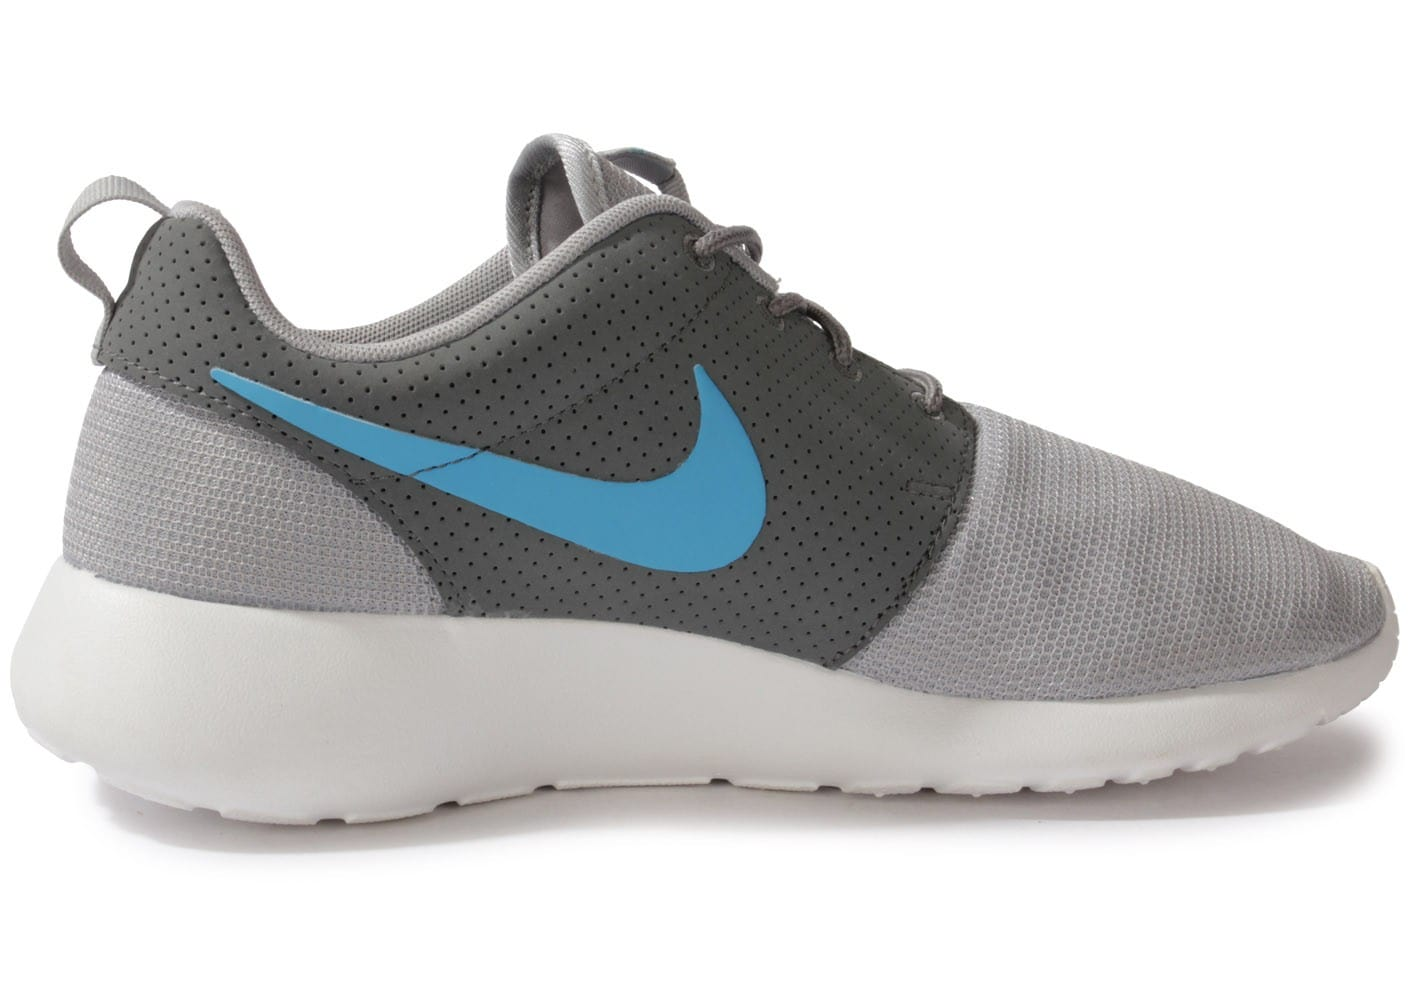 nike roshe run grise chaussures baskets homme chausport. Black Bedroom Furniture Sets. Home Design Ideas